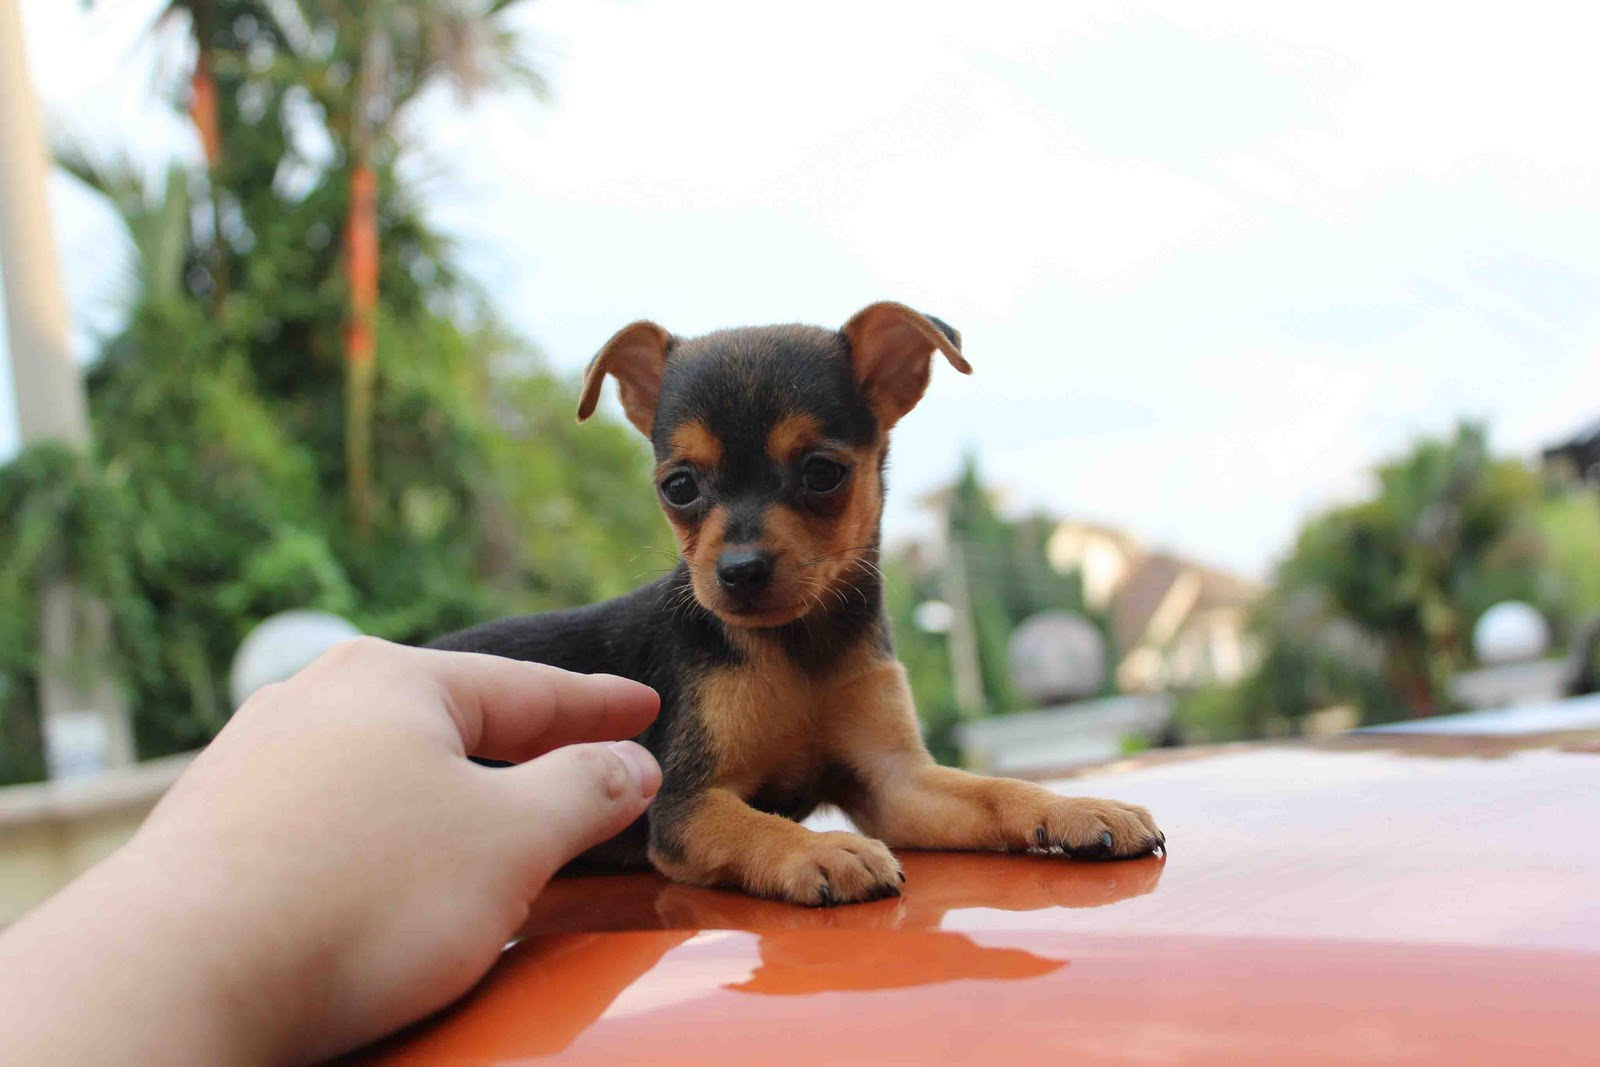 Piper, the Min Pin puppy at 3 ½ months old - m5x.eu